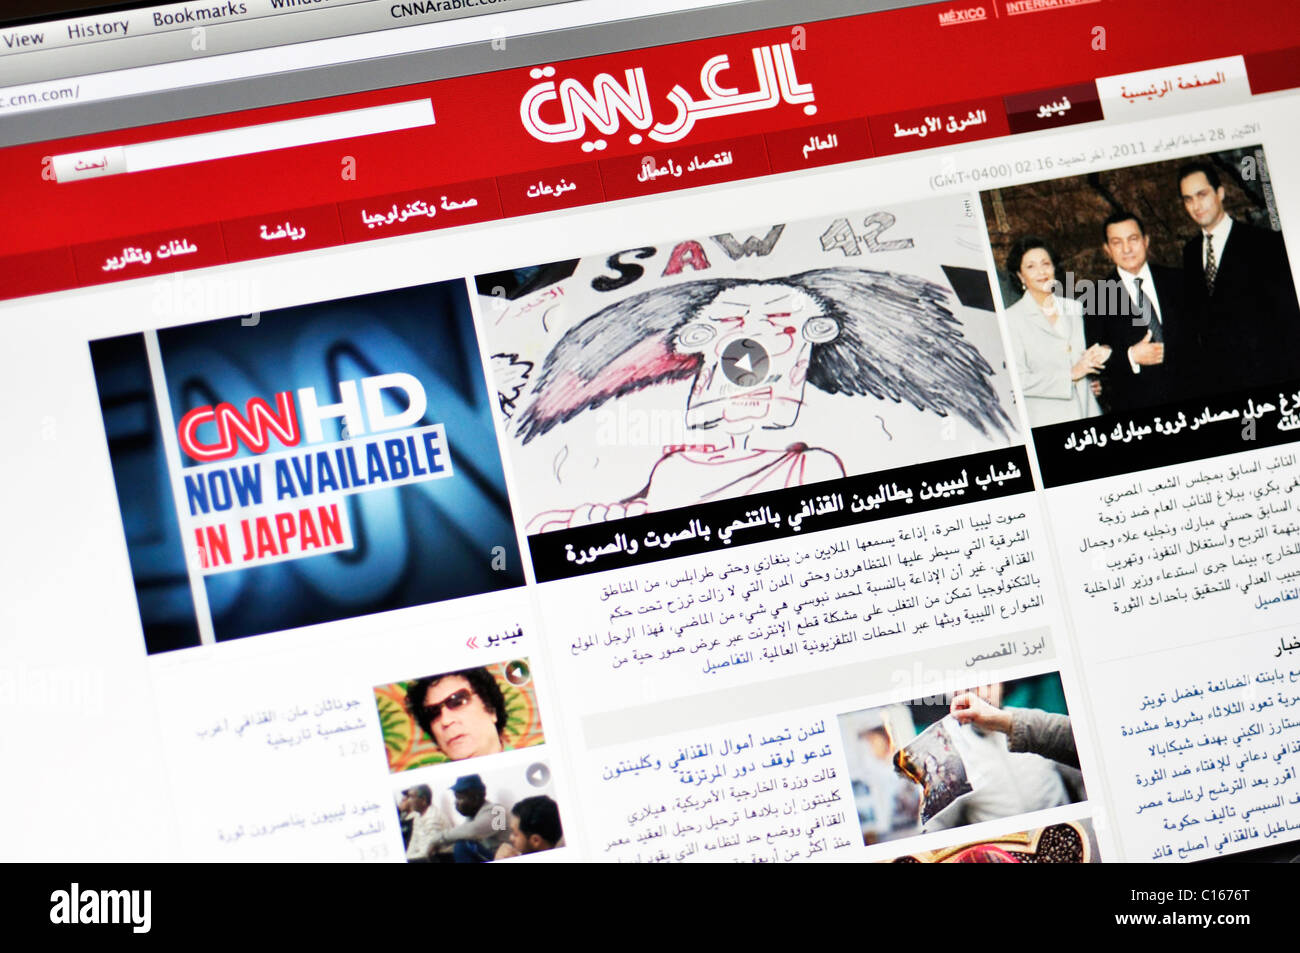 CNN-Website - Arabisch Stockbild